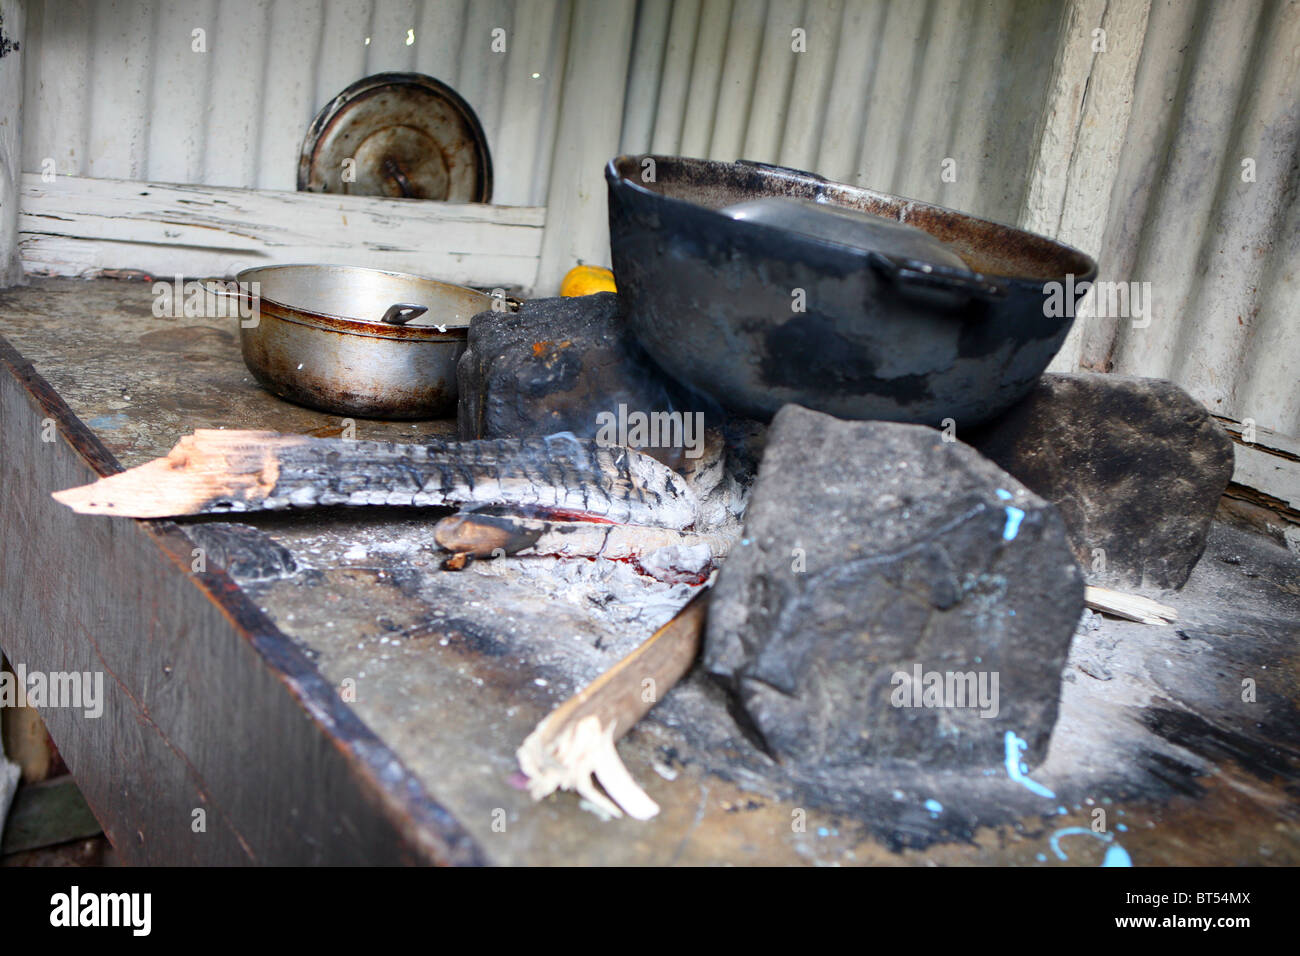 Dominican Cooking Stock Photos Dominican Cooking Stock Images Alamy